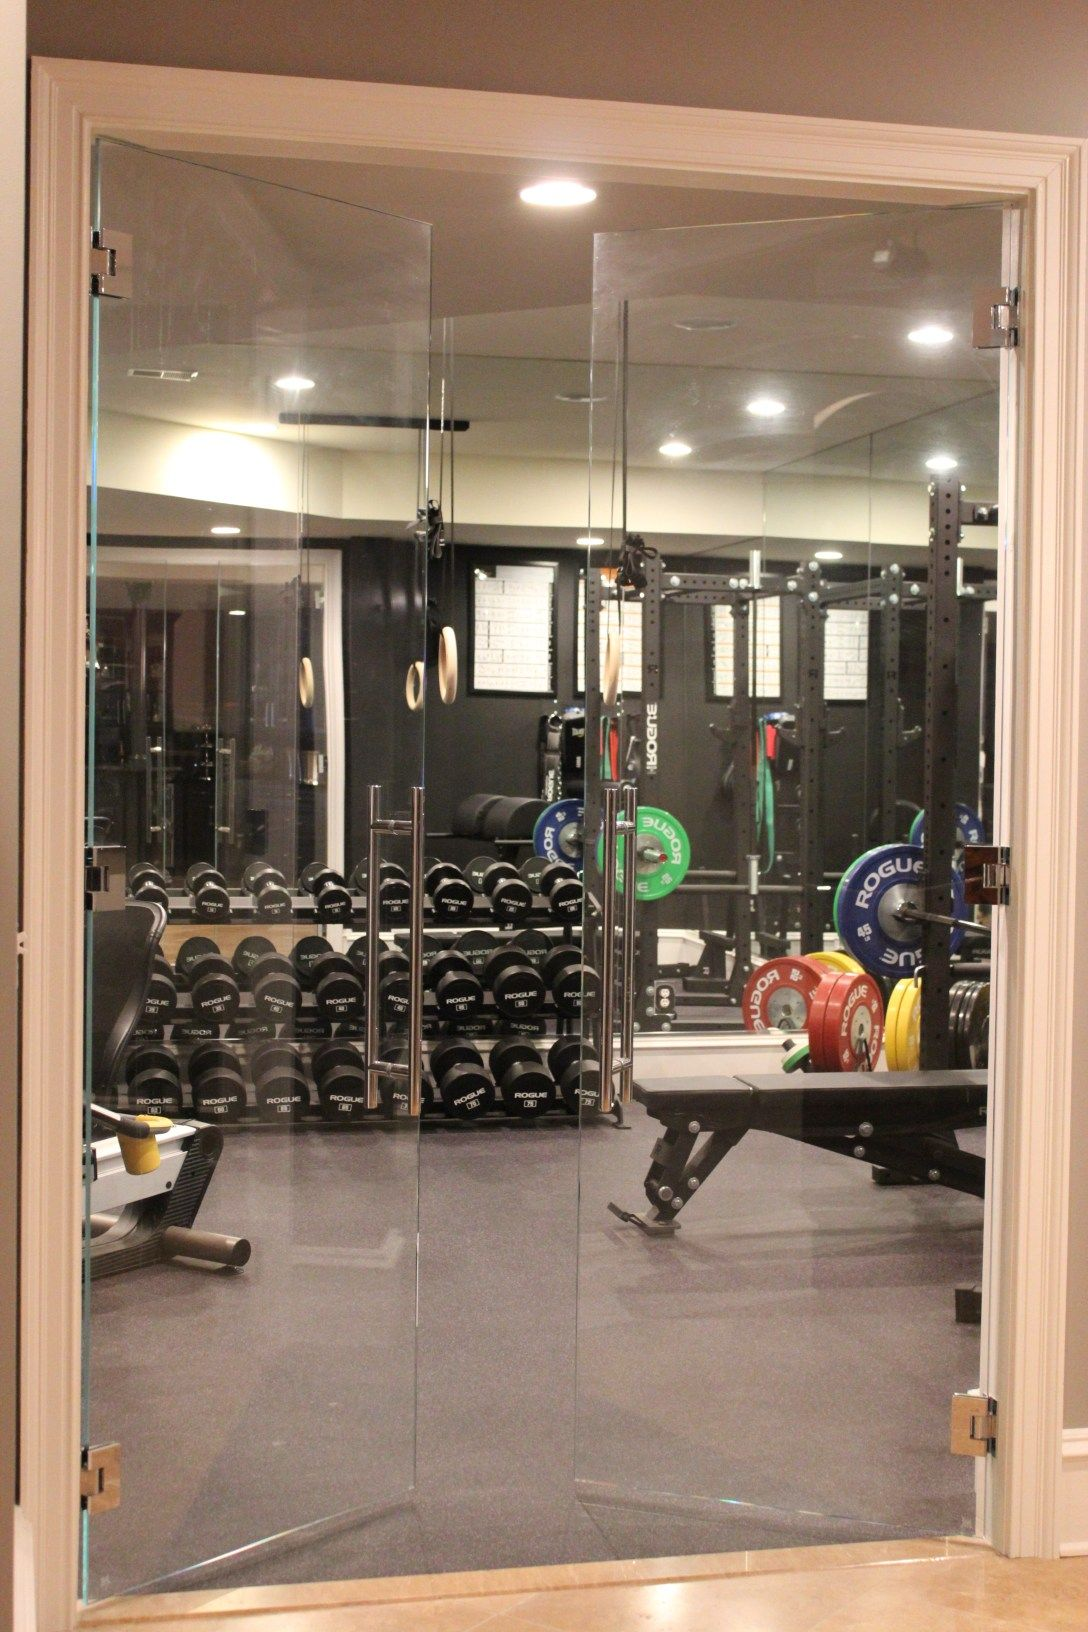 Building The Ultimate Home Gym The Rogue Way Happy Haute Home